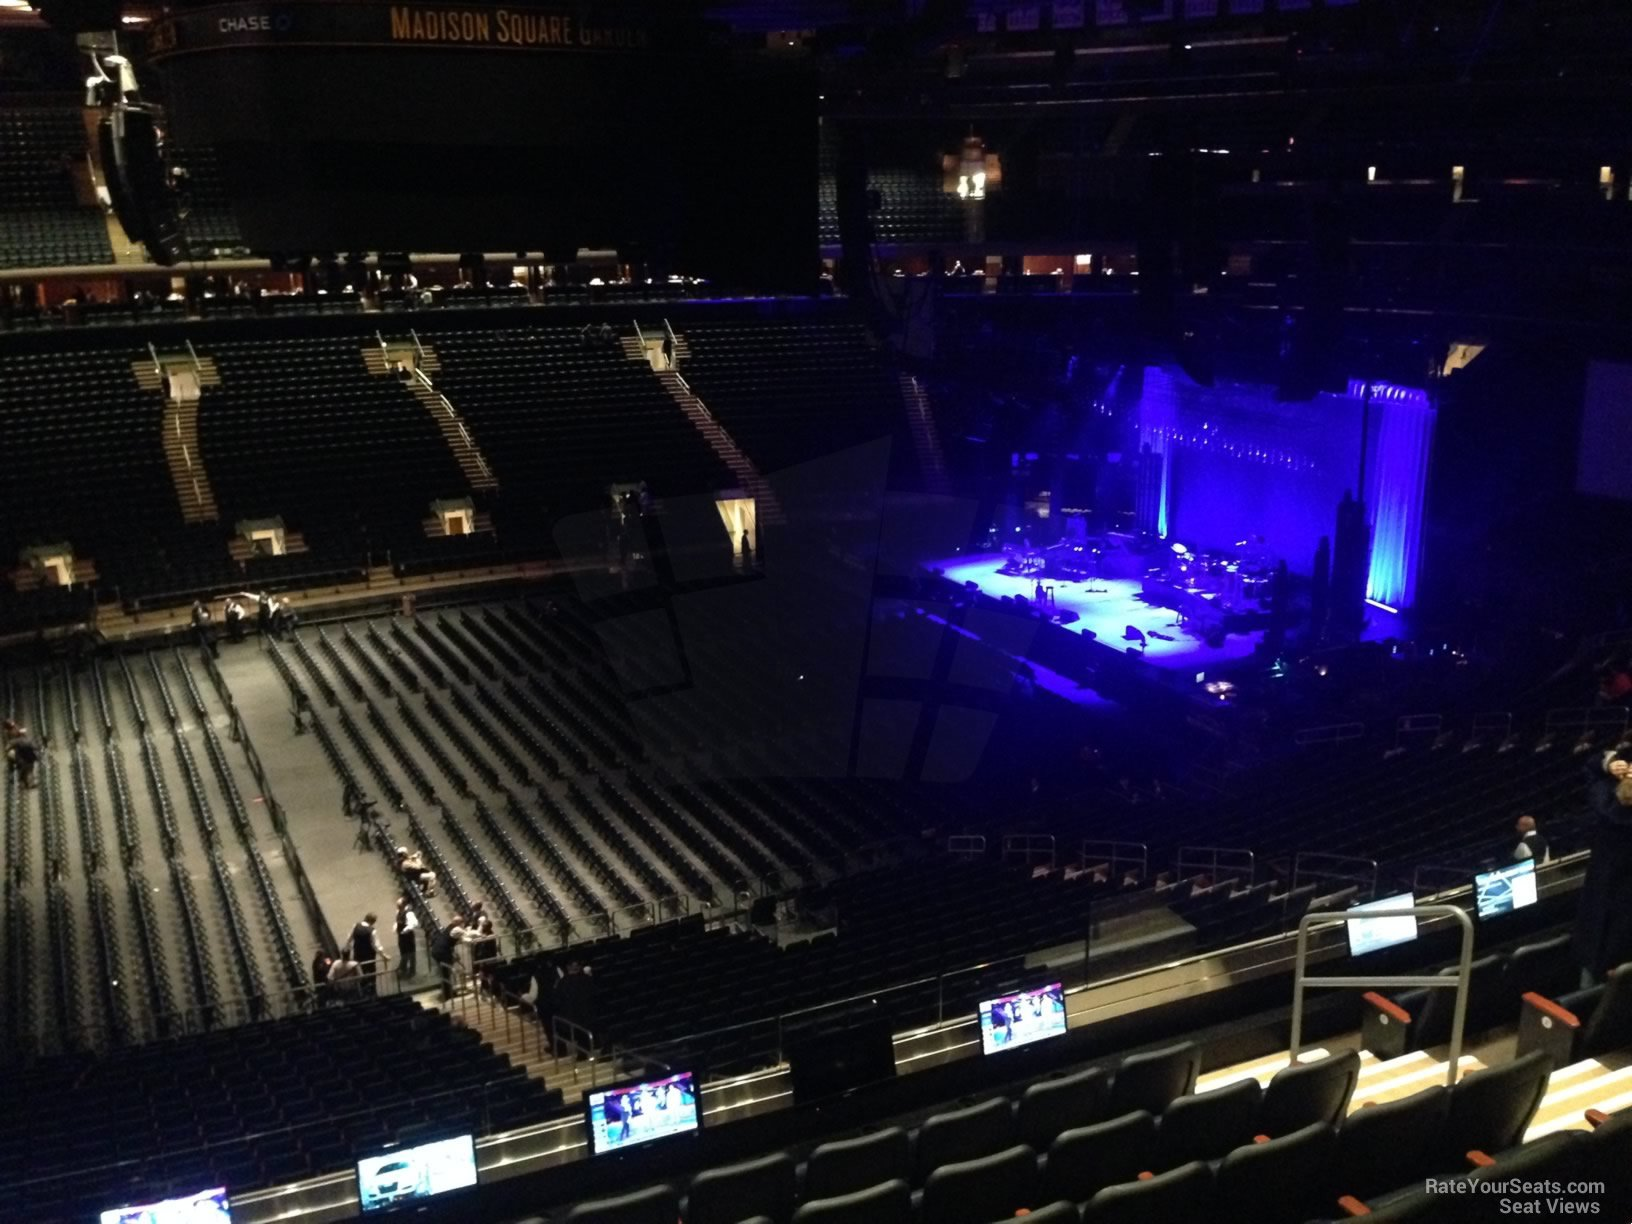 Madison Square Garden Section 210 Concert Seating RateYourSeatscom